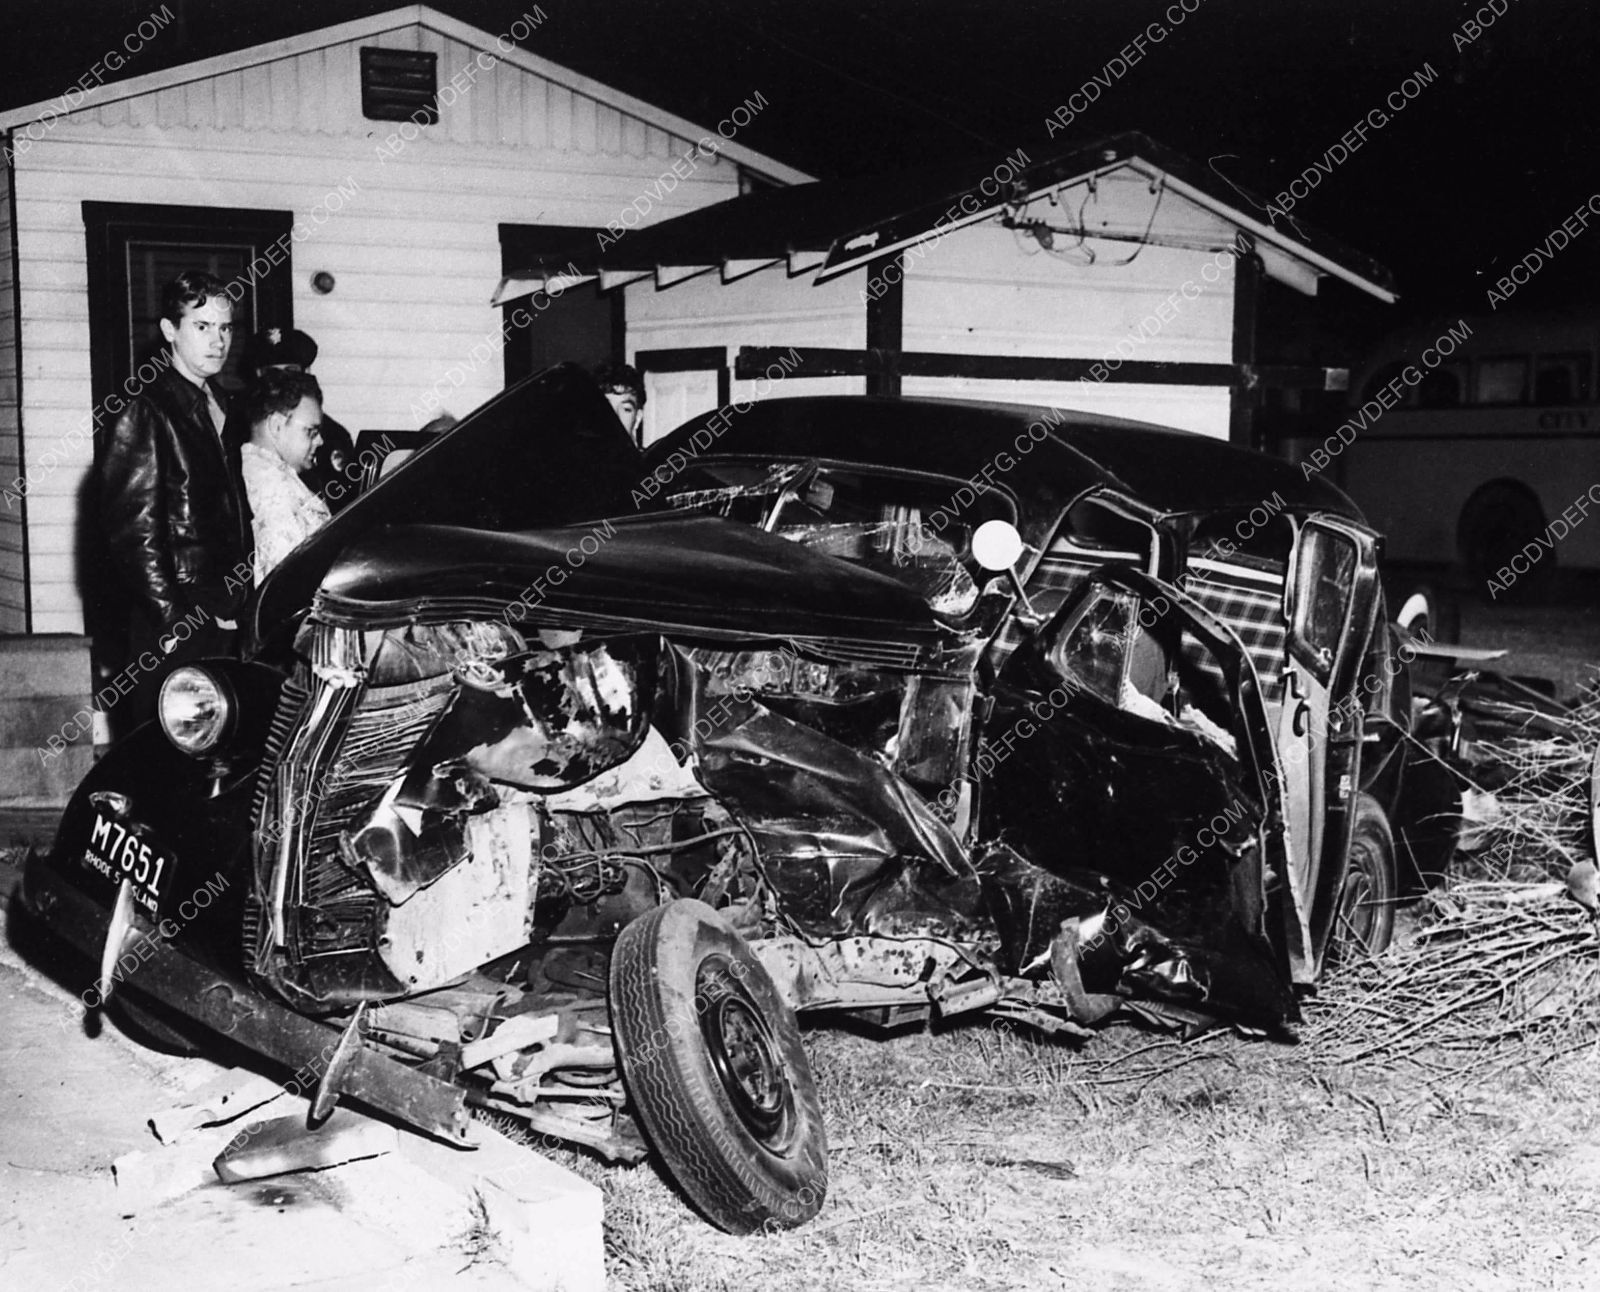 News Photo Disaster Automobile Accident 3629 31 Photo Old Vintage Cars Accident